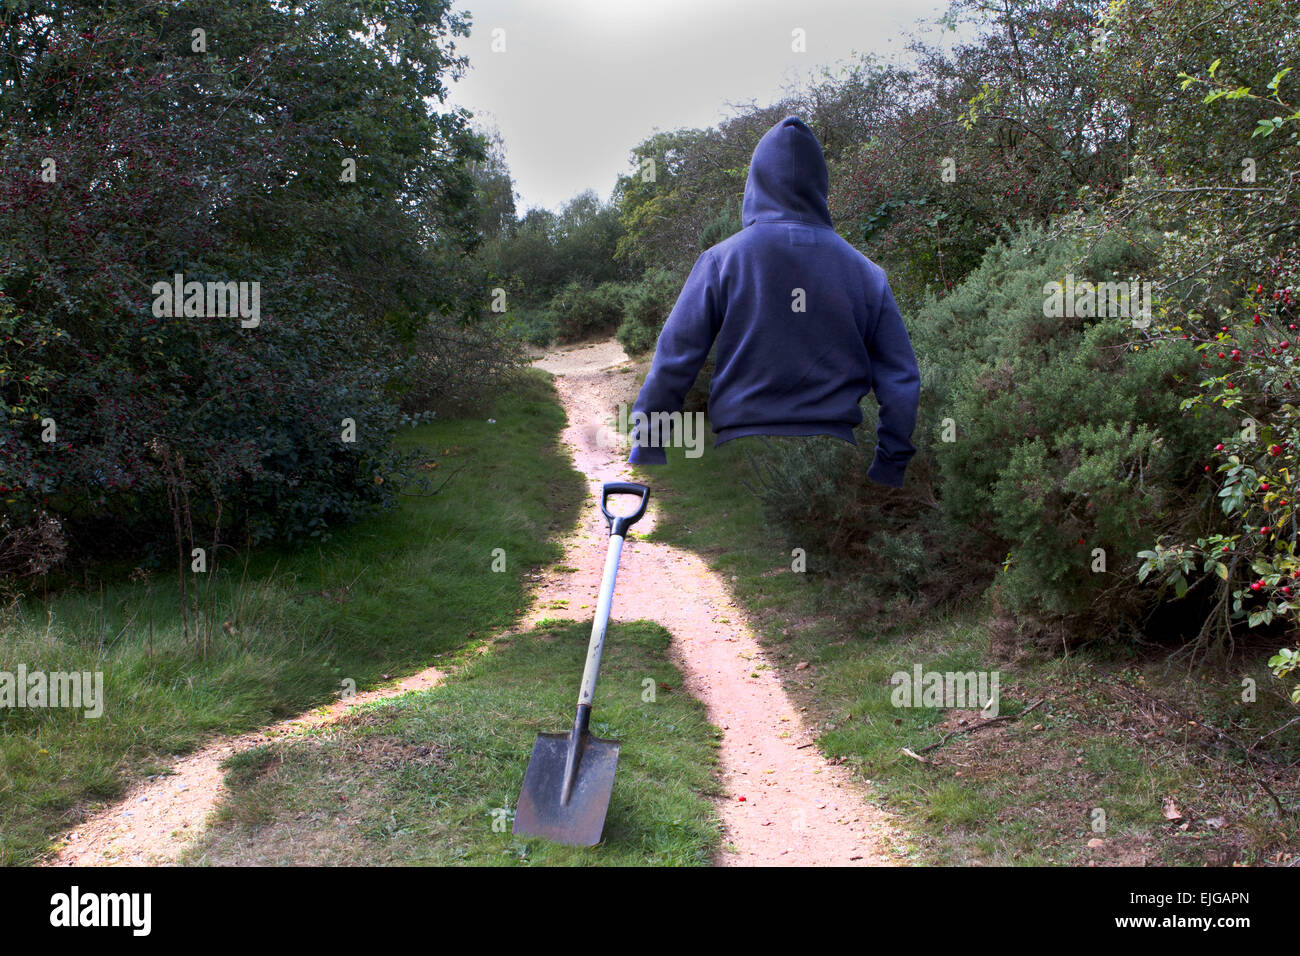 choosing the right way, cojiendo el camino correcto , mystery man with a shovel,  hombre con una pala, man walking - Stock Image